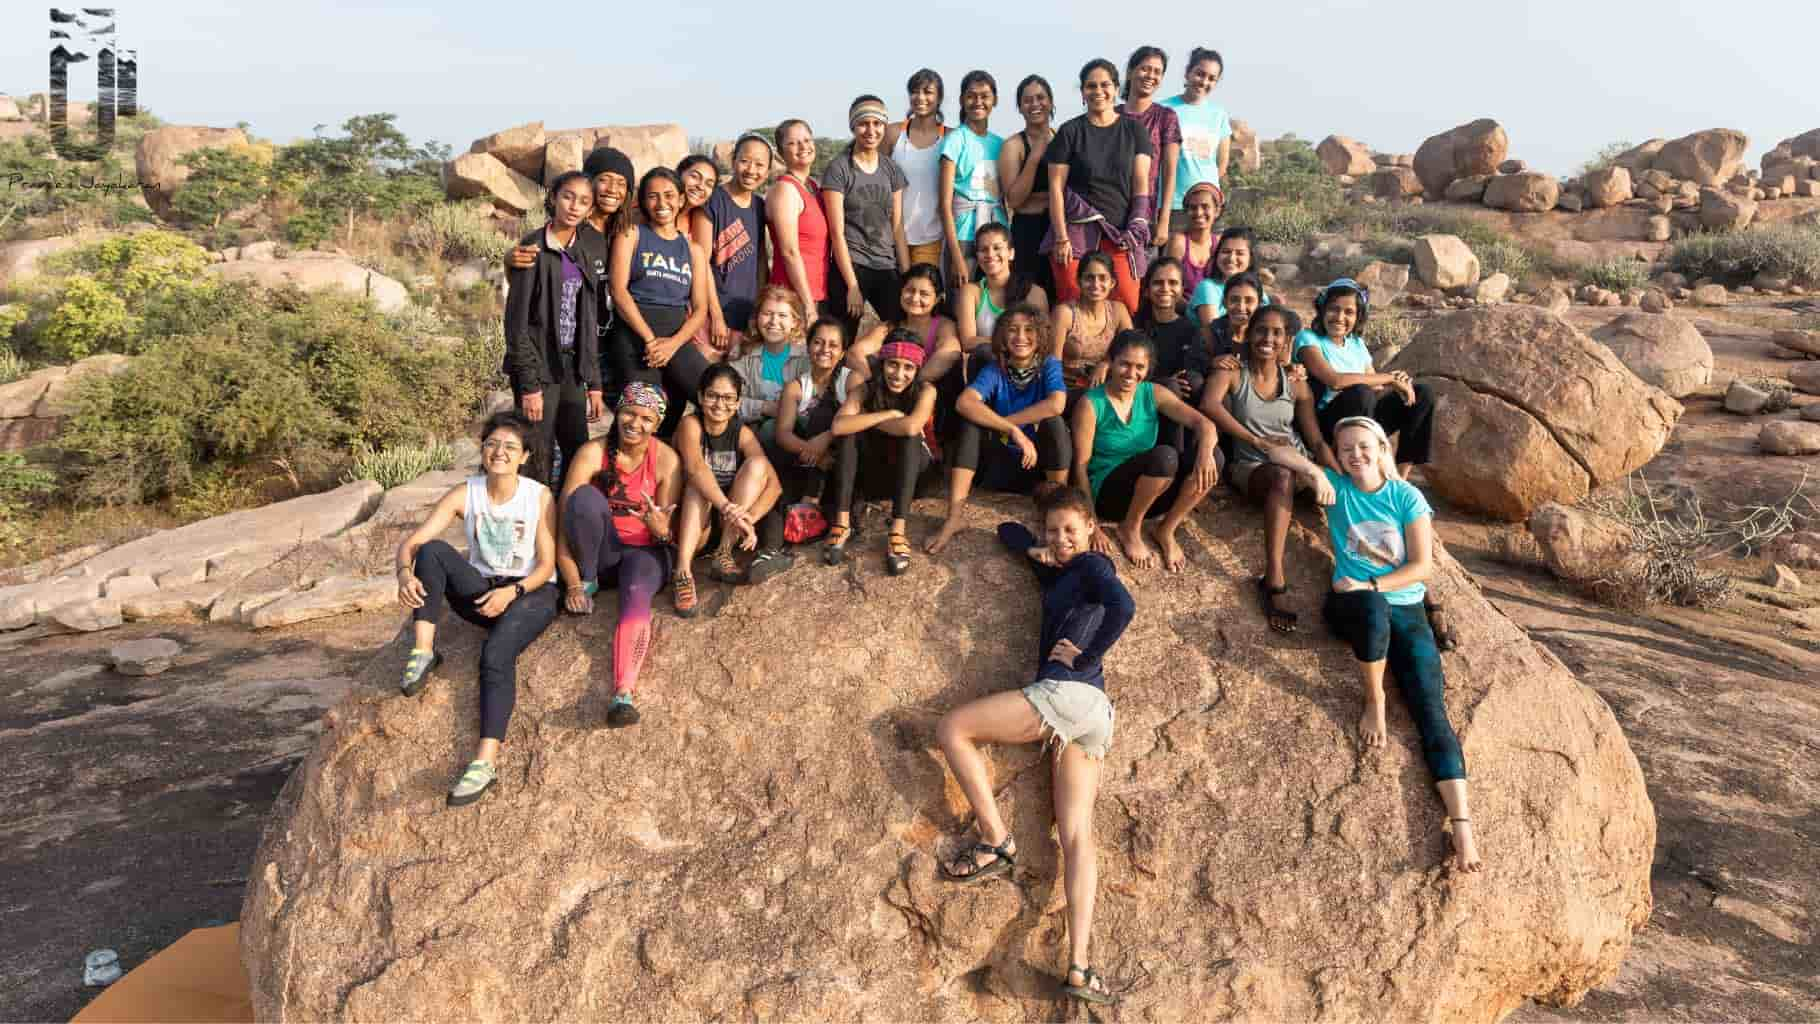 Climb Like a Woman : A Community of Women Empowered by the Outdoors